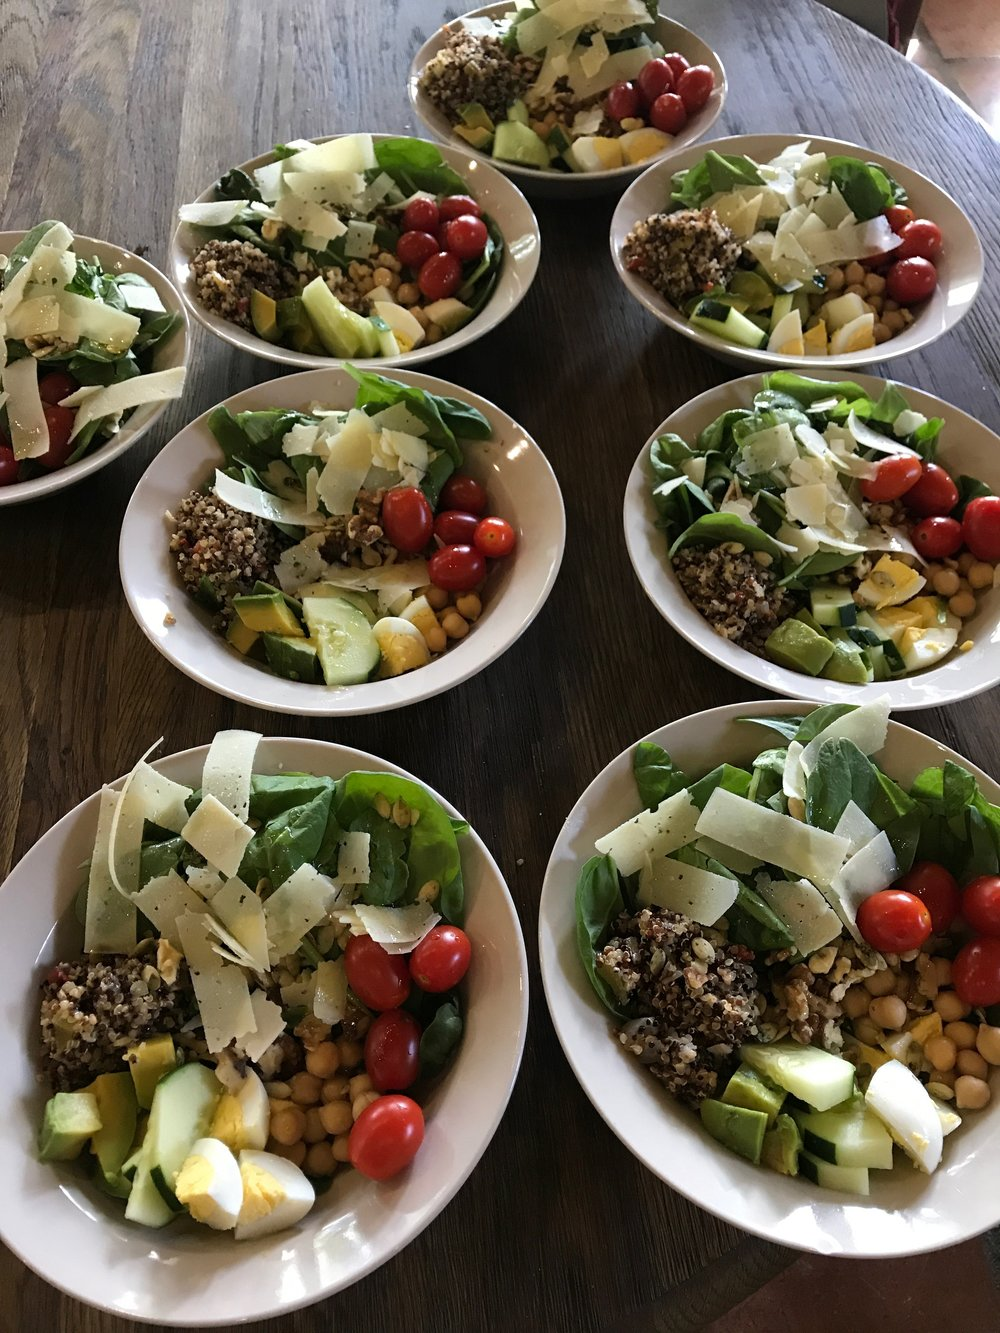 Protein Bowl - A simple lunch before an afternoon of great hiking.  Protein, grains and healthy fats are a staple in a healthy diet in the proper portion size.